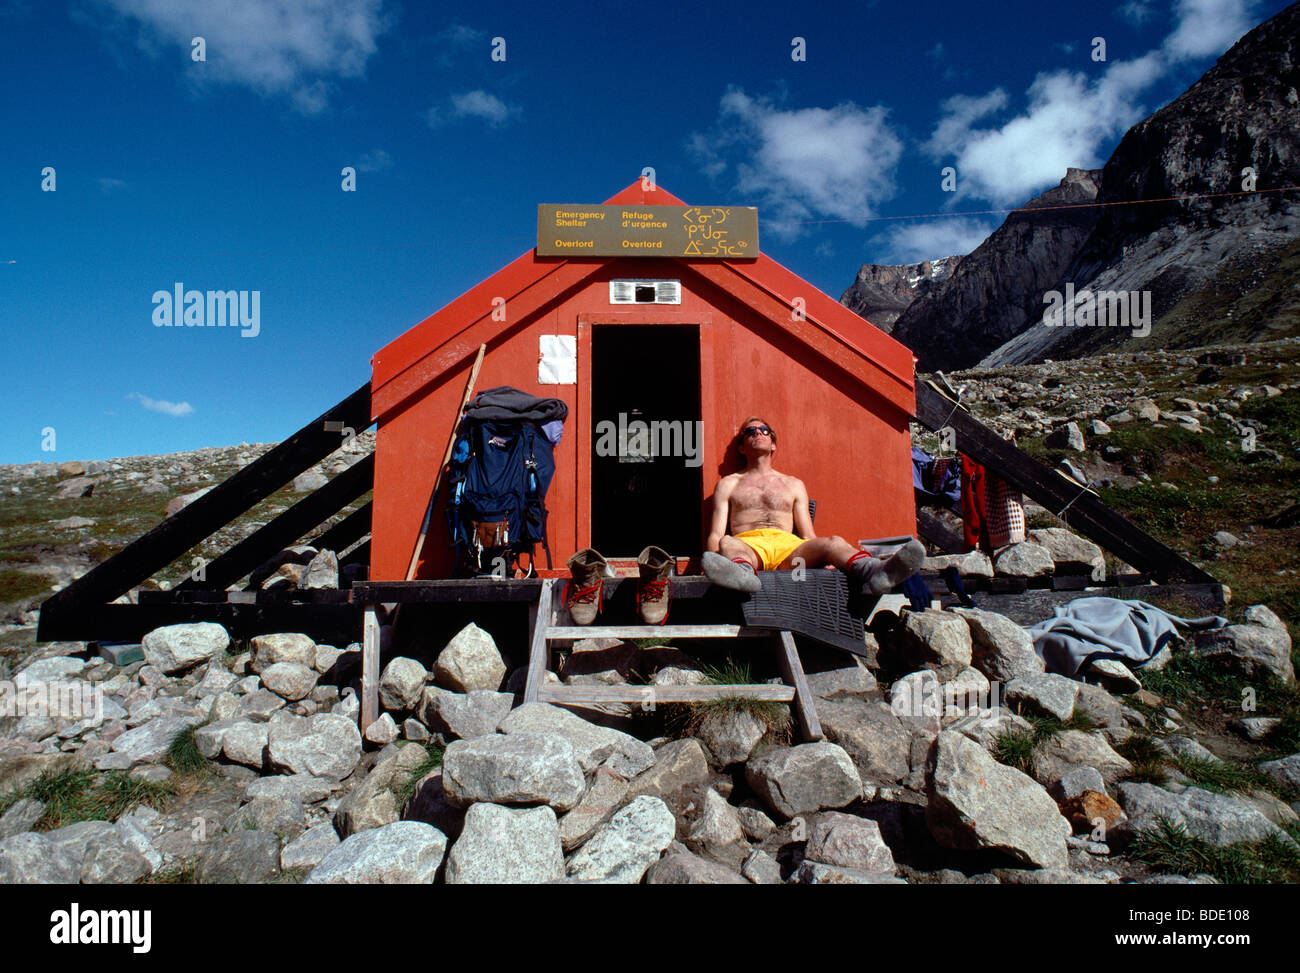 Explorer H. Mark Weidman relaxes in the sun at the Overlord emergency shelter in Auyuittuq National Park, Baffin - Stock Image